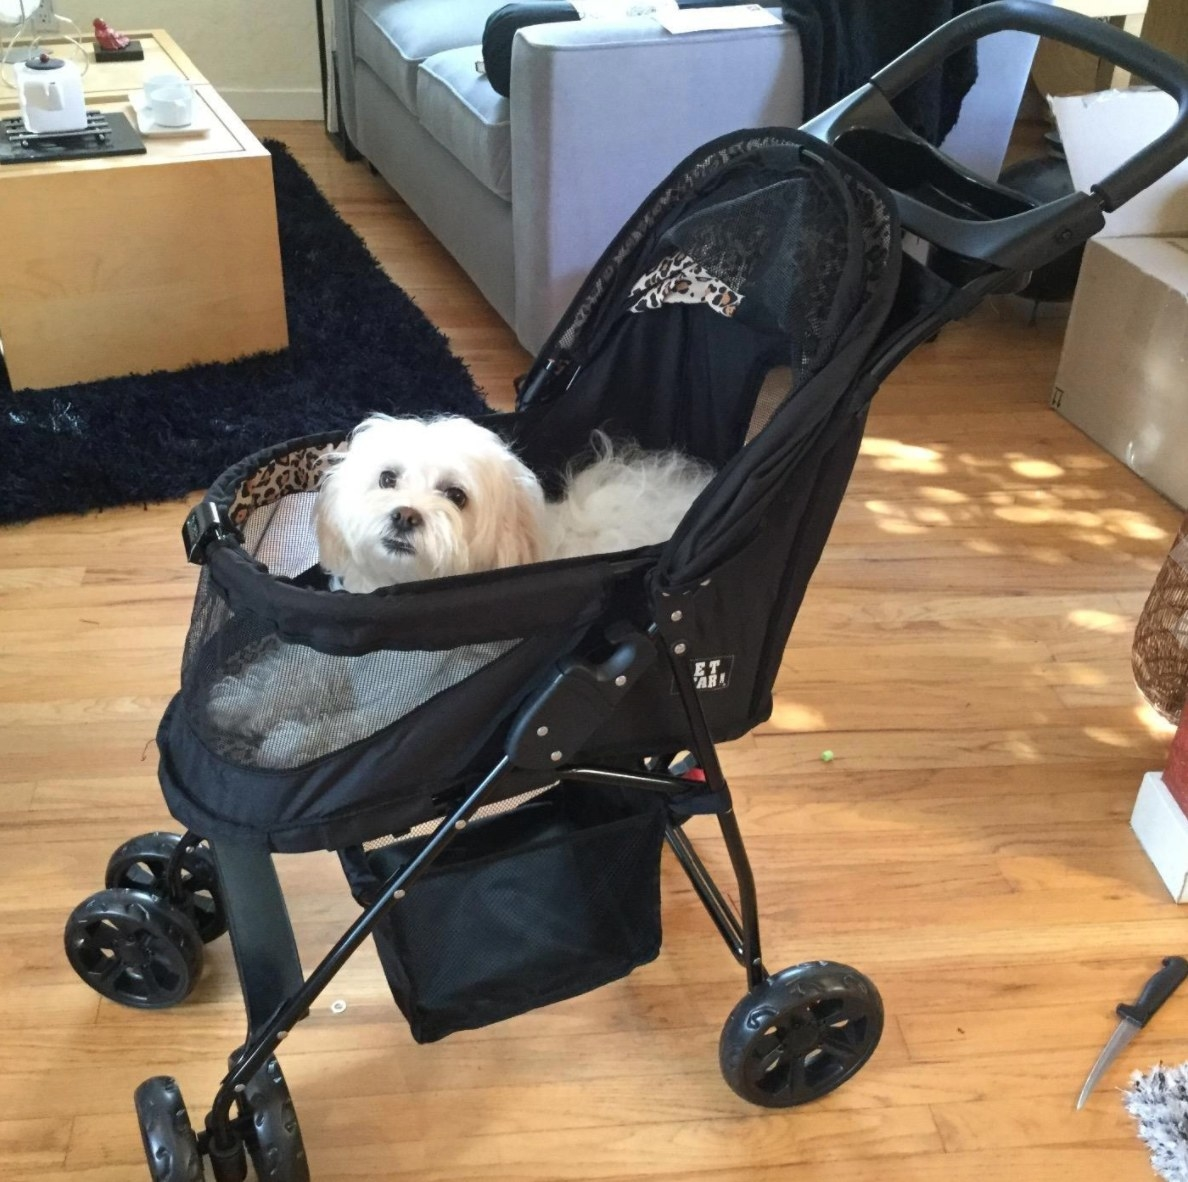 A reviewer's image of their dog in the black stroller